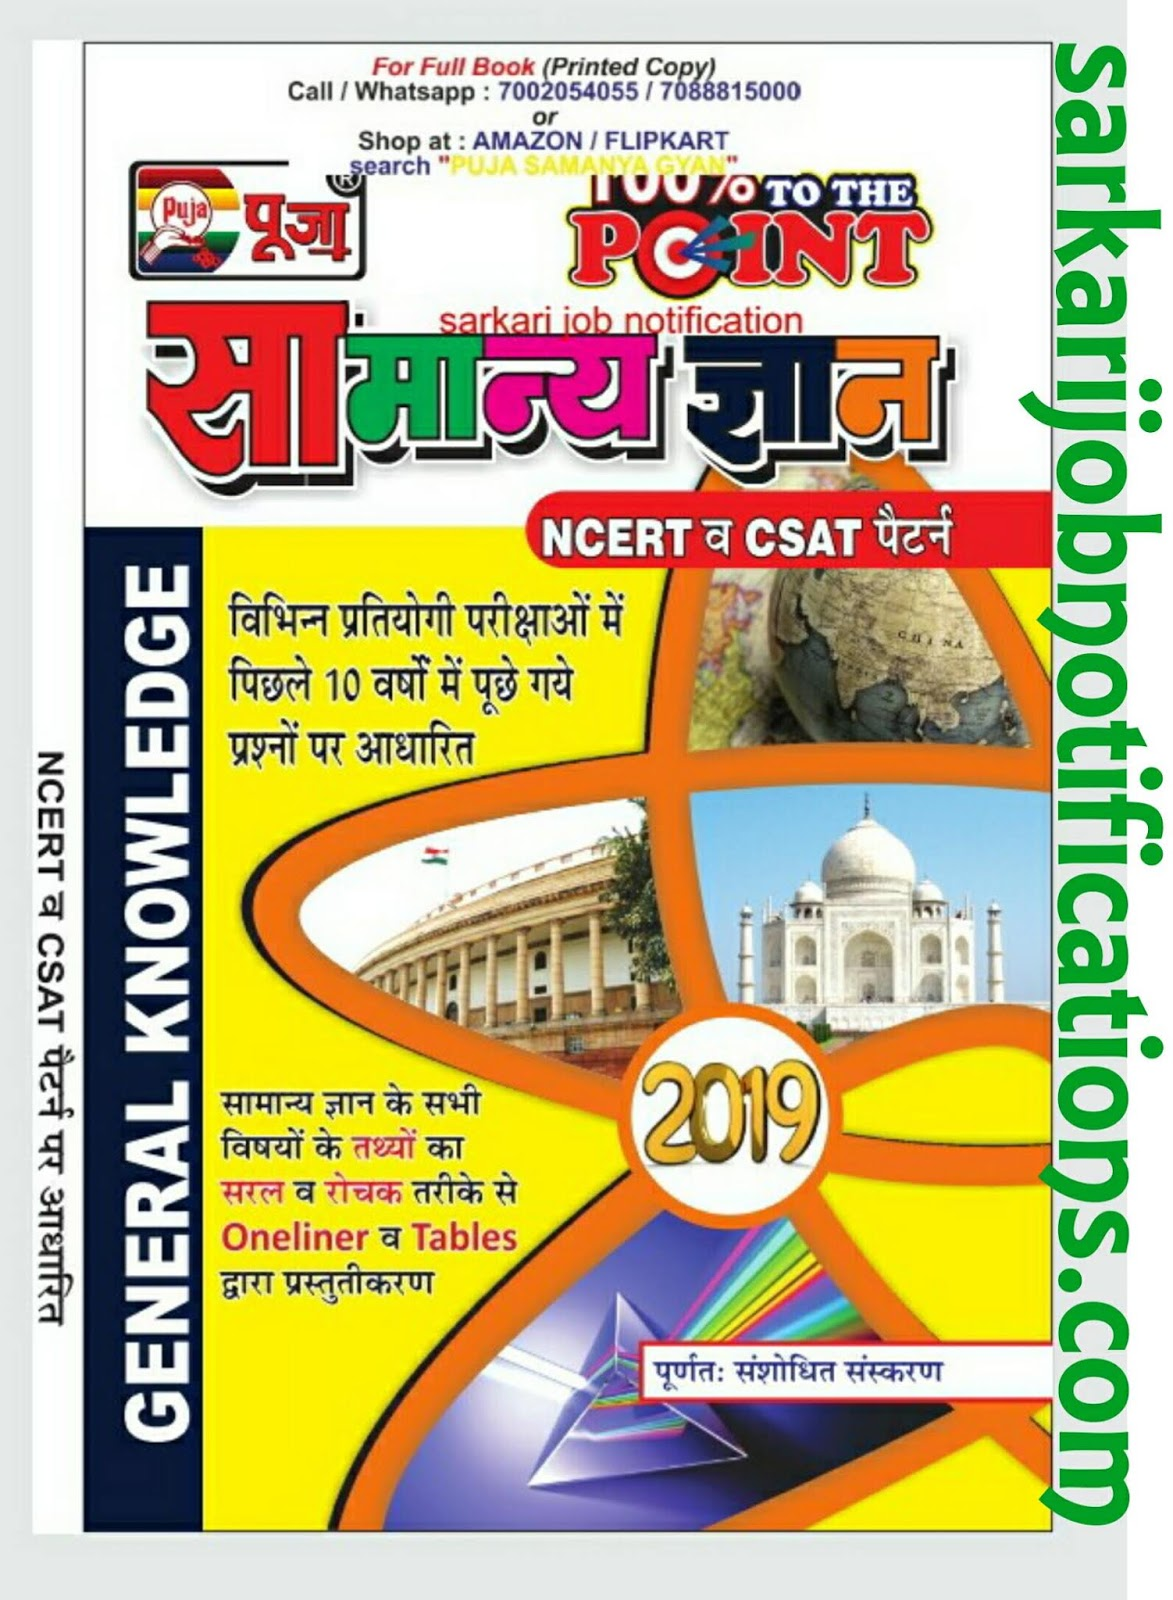 100% to the Point Puja Publication General Knowledge Based